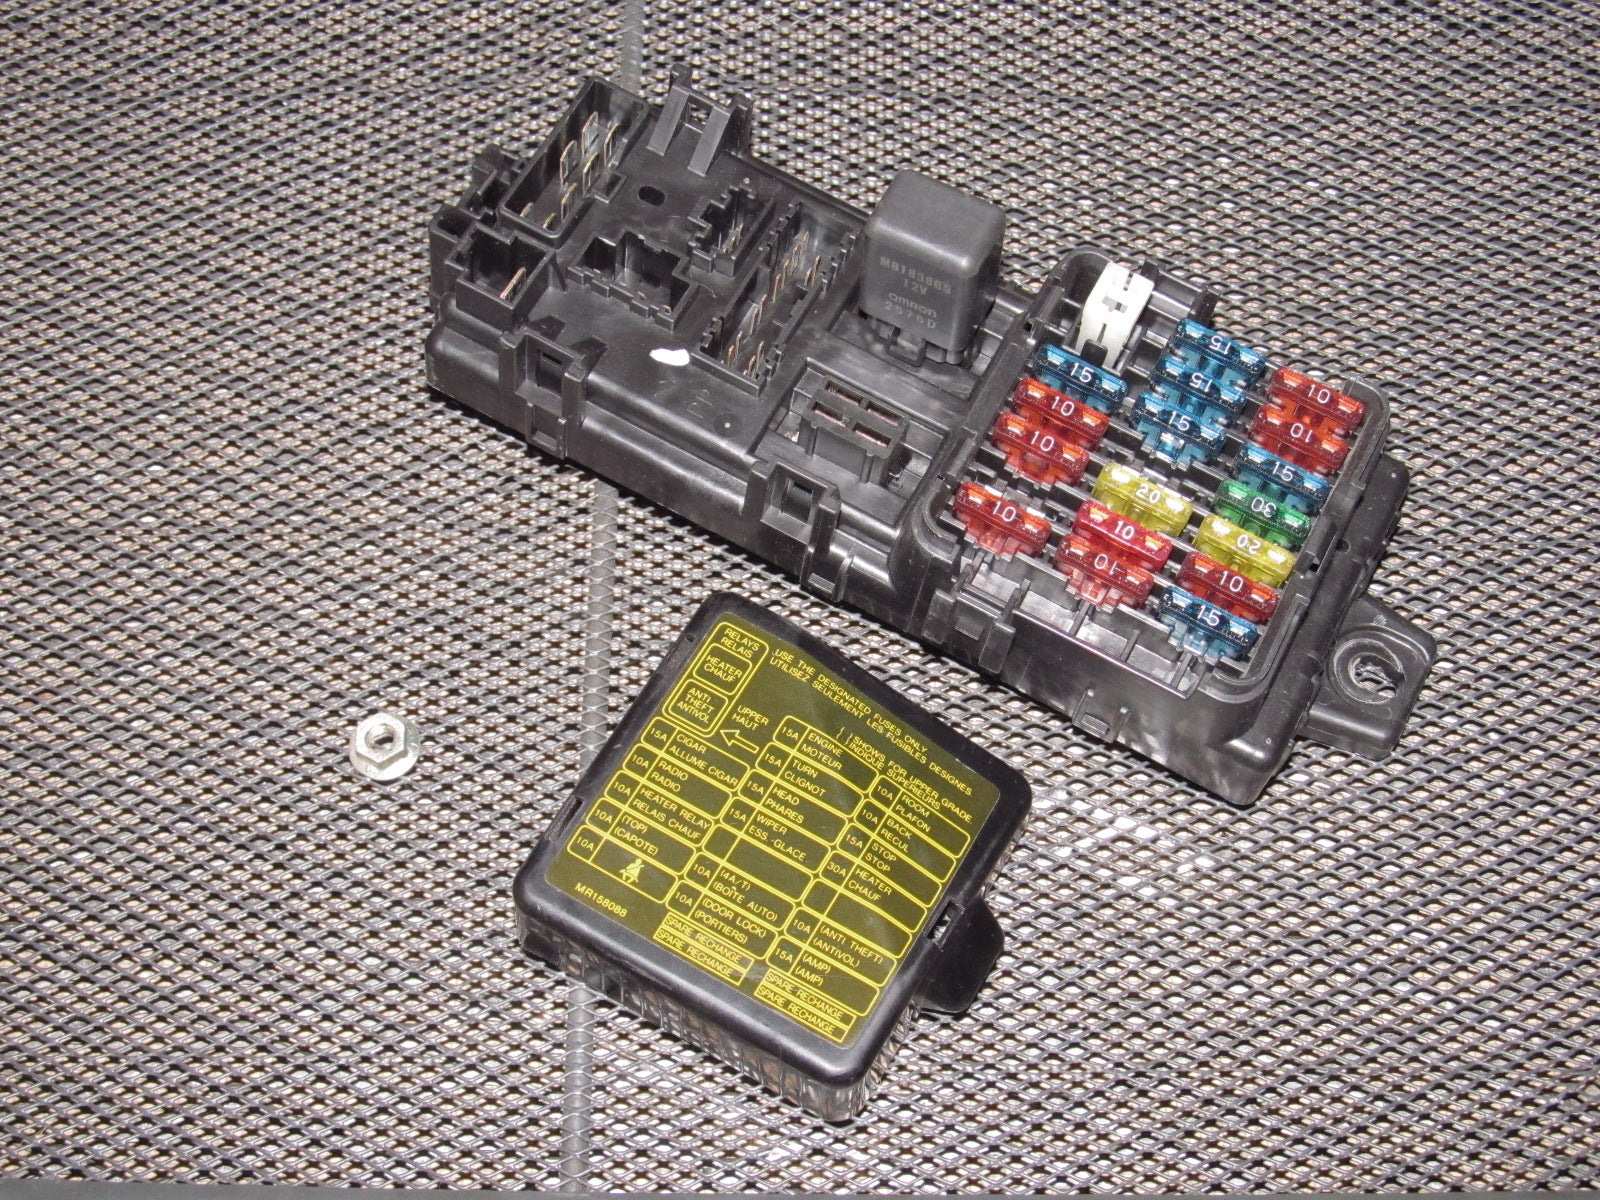 94 95 96 97 Mitsubishi 3000GT OEM Interior Fuse Box ...  Sx Fuse Box Diagram on 95 240sx starter diagram, 95 240sx radio, 95 240sx interior, 95 240sx wiring, s14 fuse diagram, 1999 nissan altima engine diagram, 95 240sx dash lights, 95 240sx fuel pump,